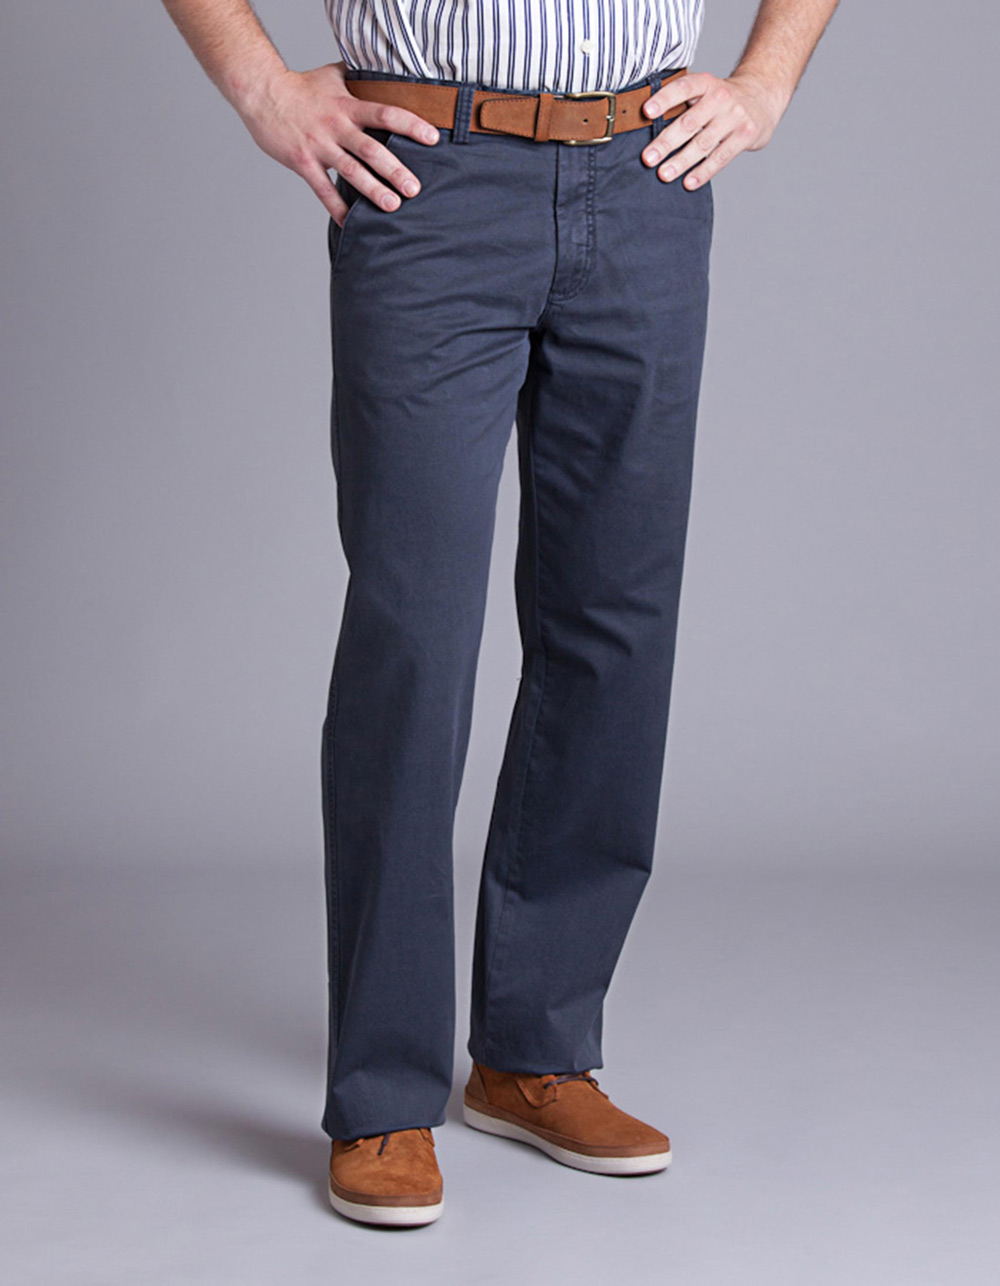 Navy chinos trousers